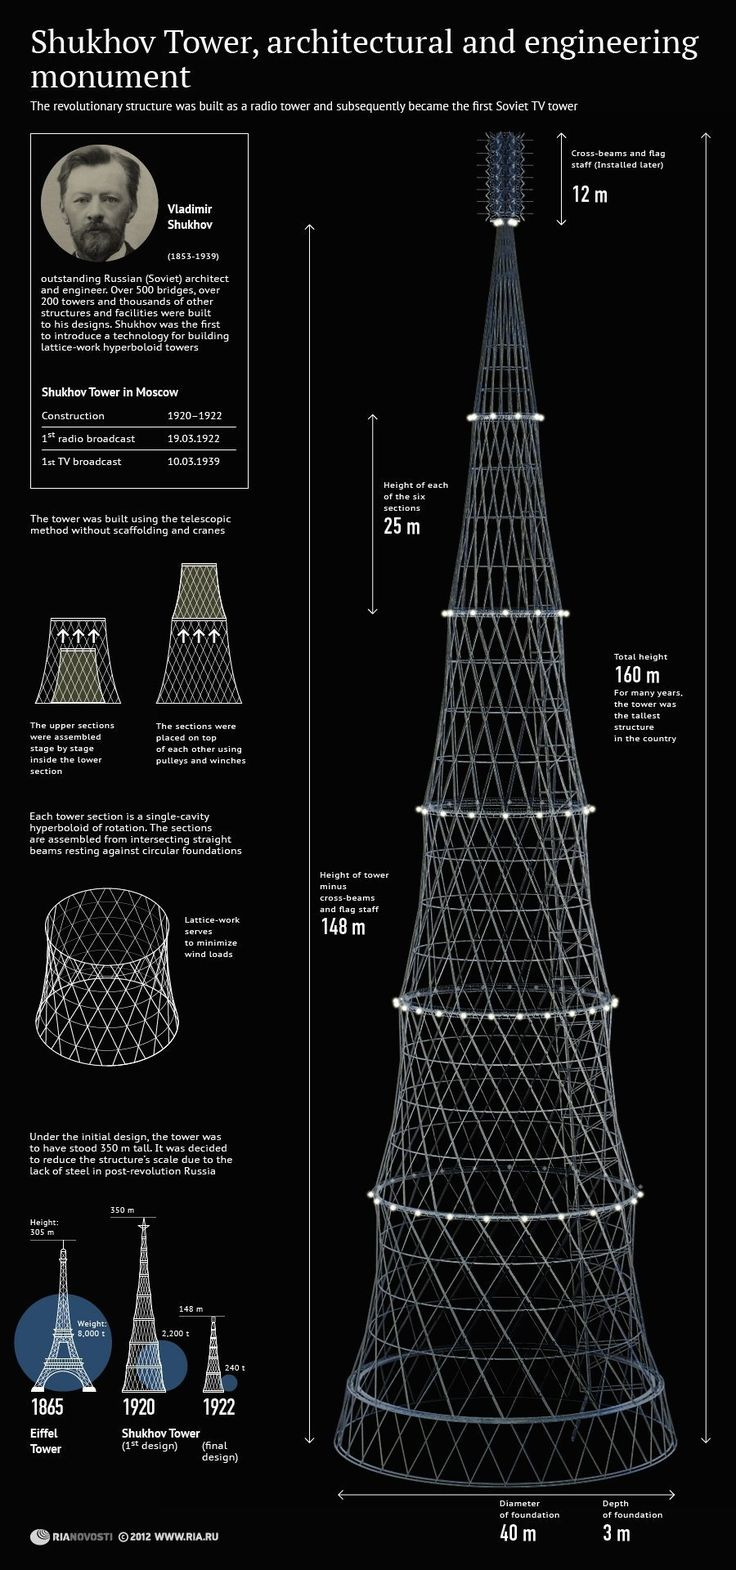 Architects to Putin: Save Shukhov Tower, Moscow's Futuristic Soviet 'Eiffel'! | Motherboard